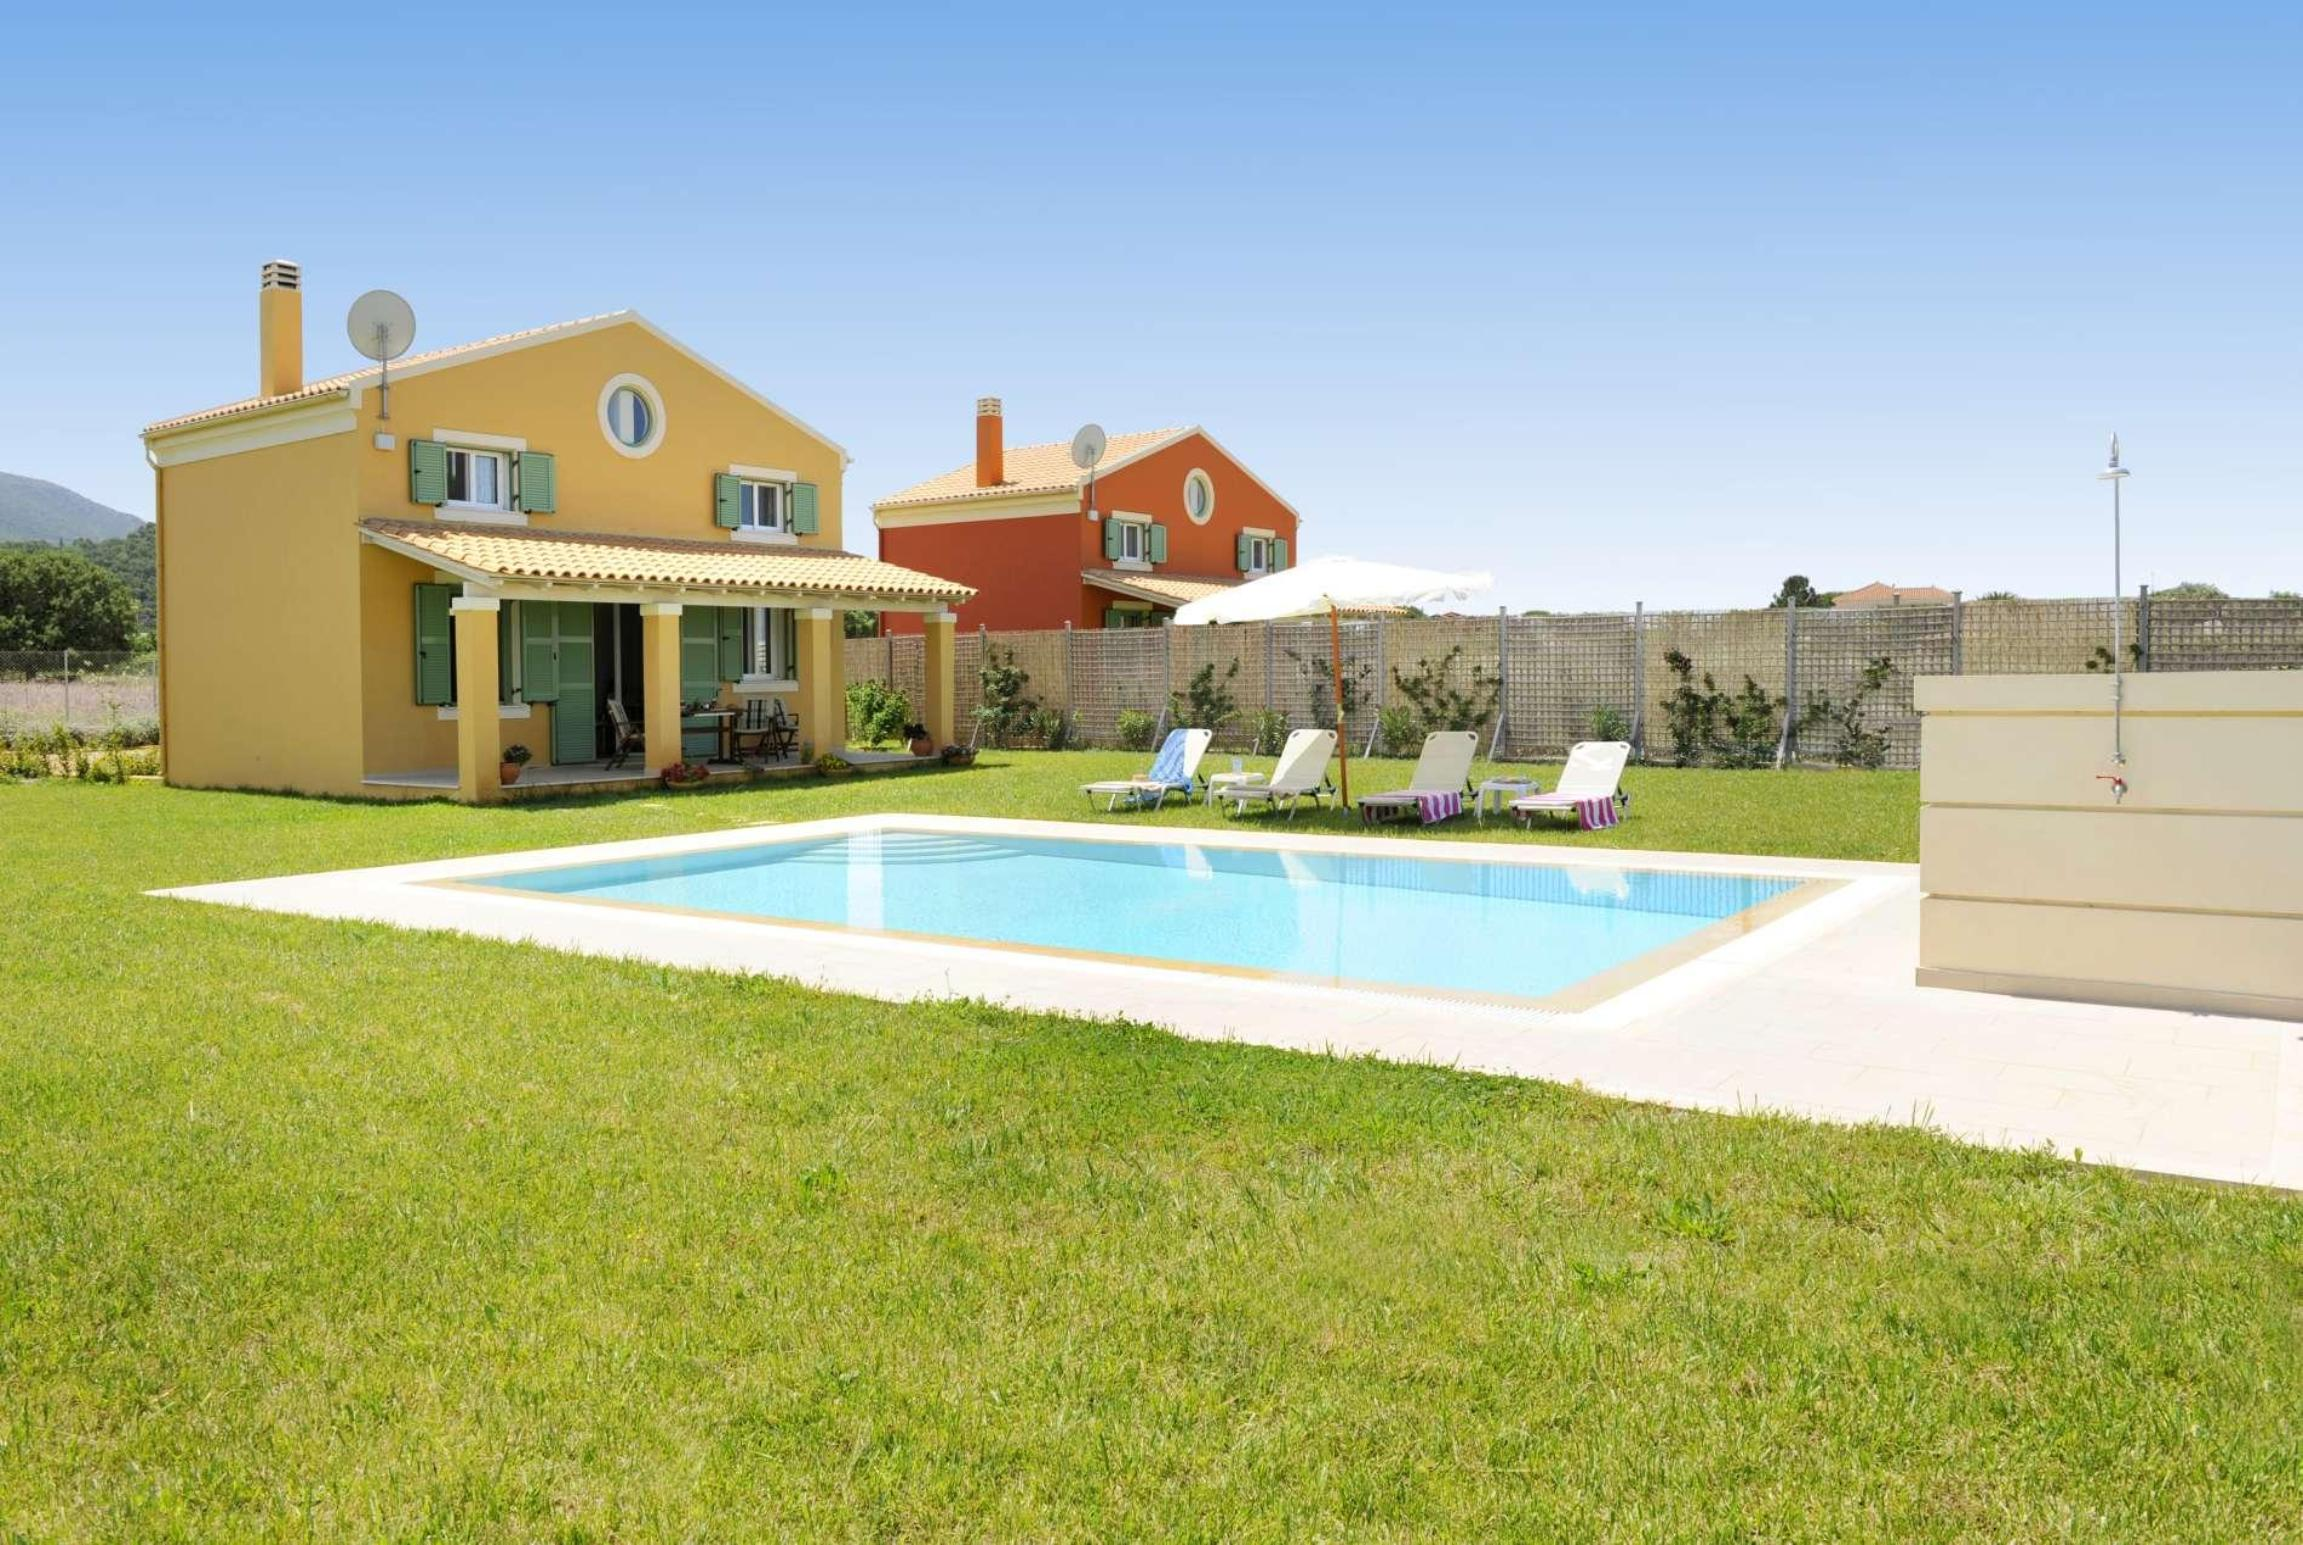 Read more about Gialetti villa